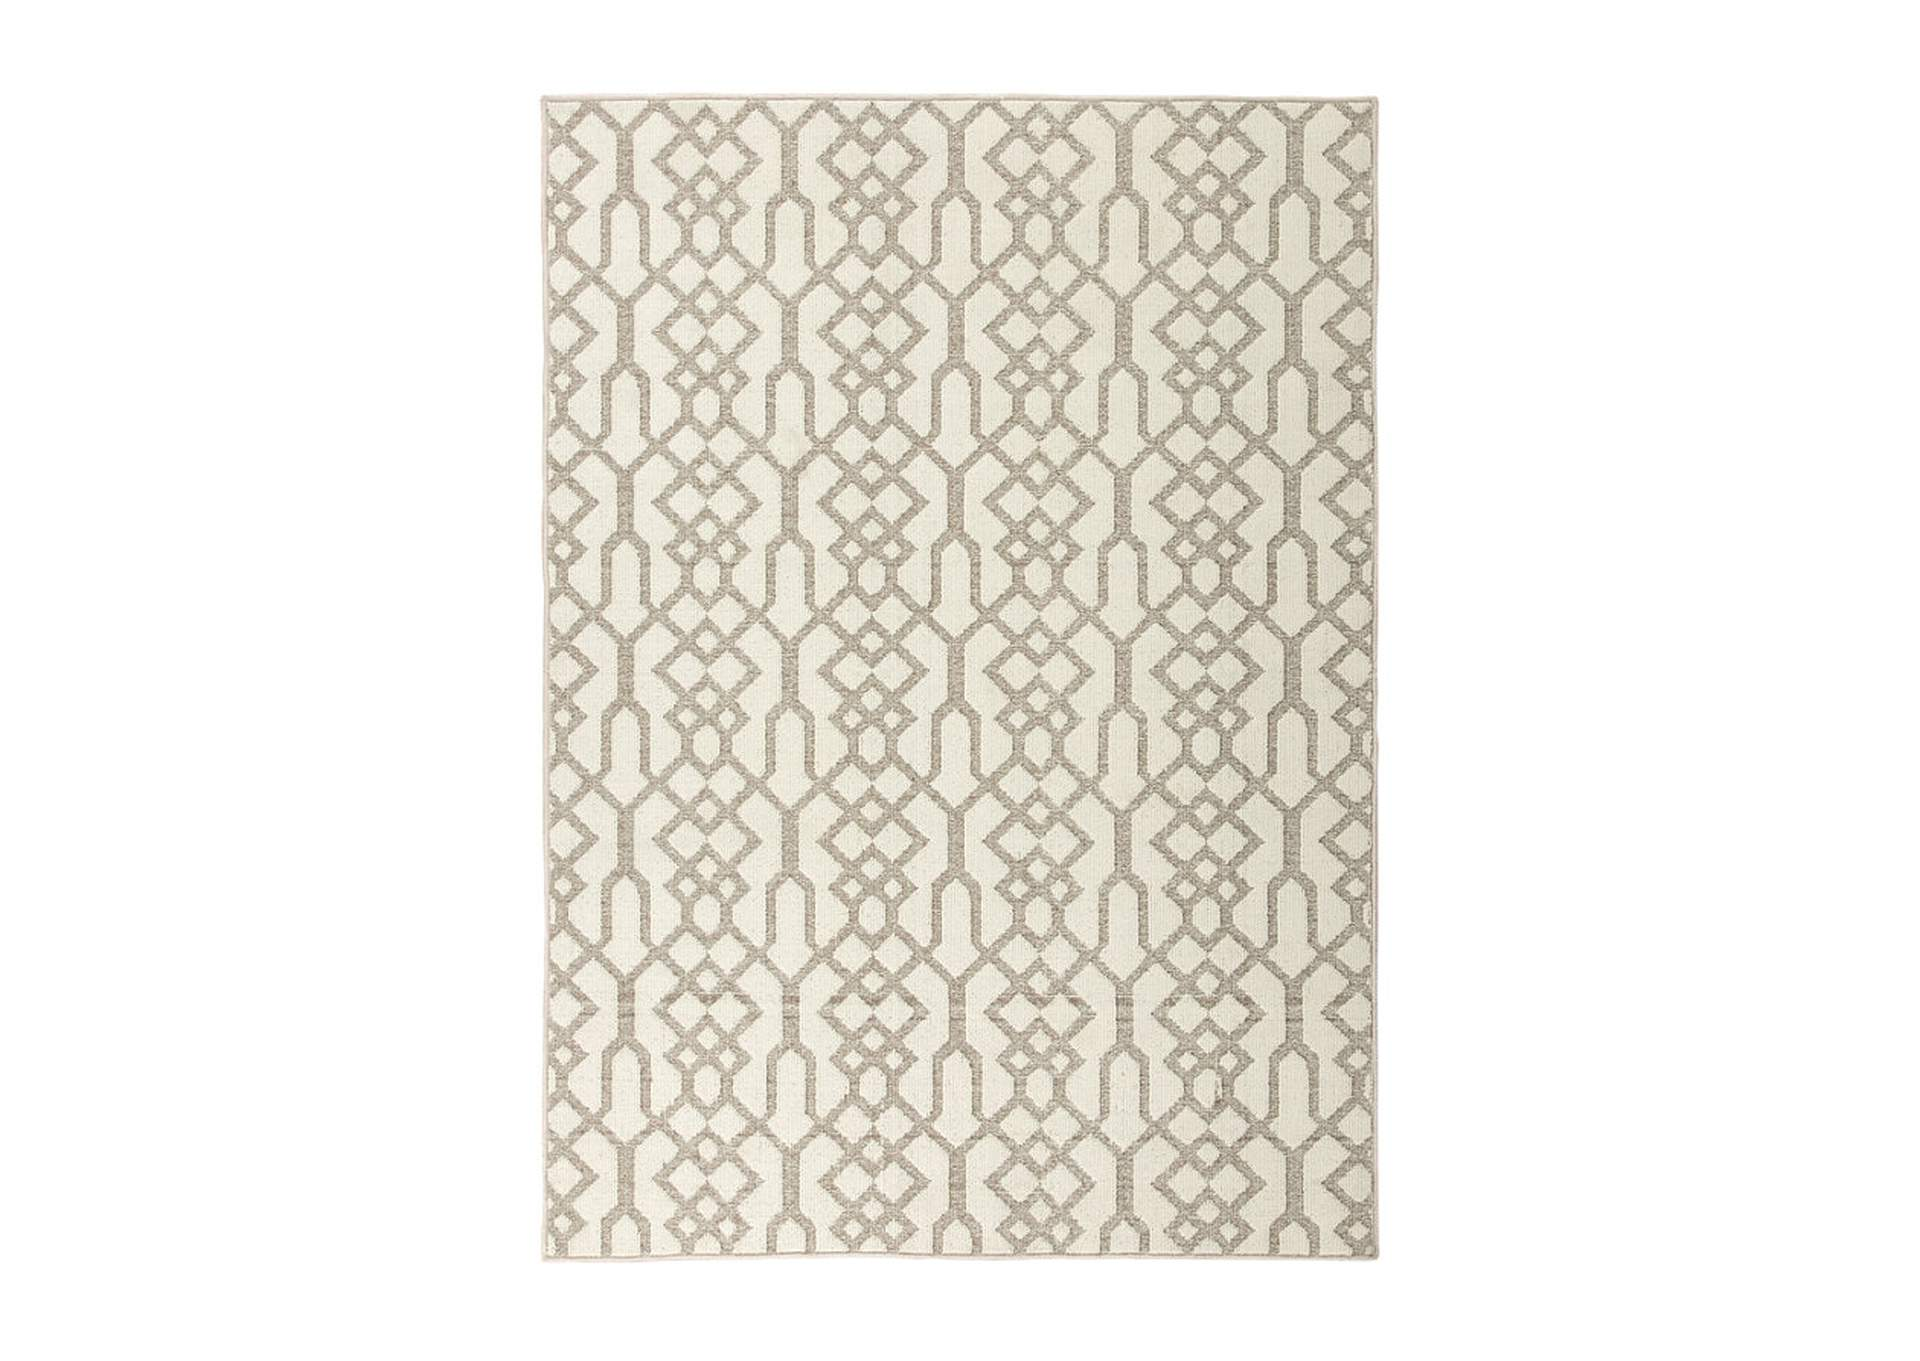 Coulee Natural Large Rug,Signature Design By Ashley